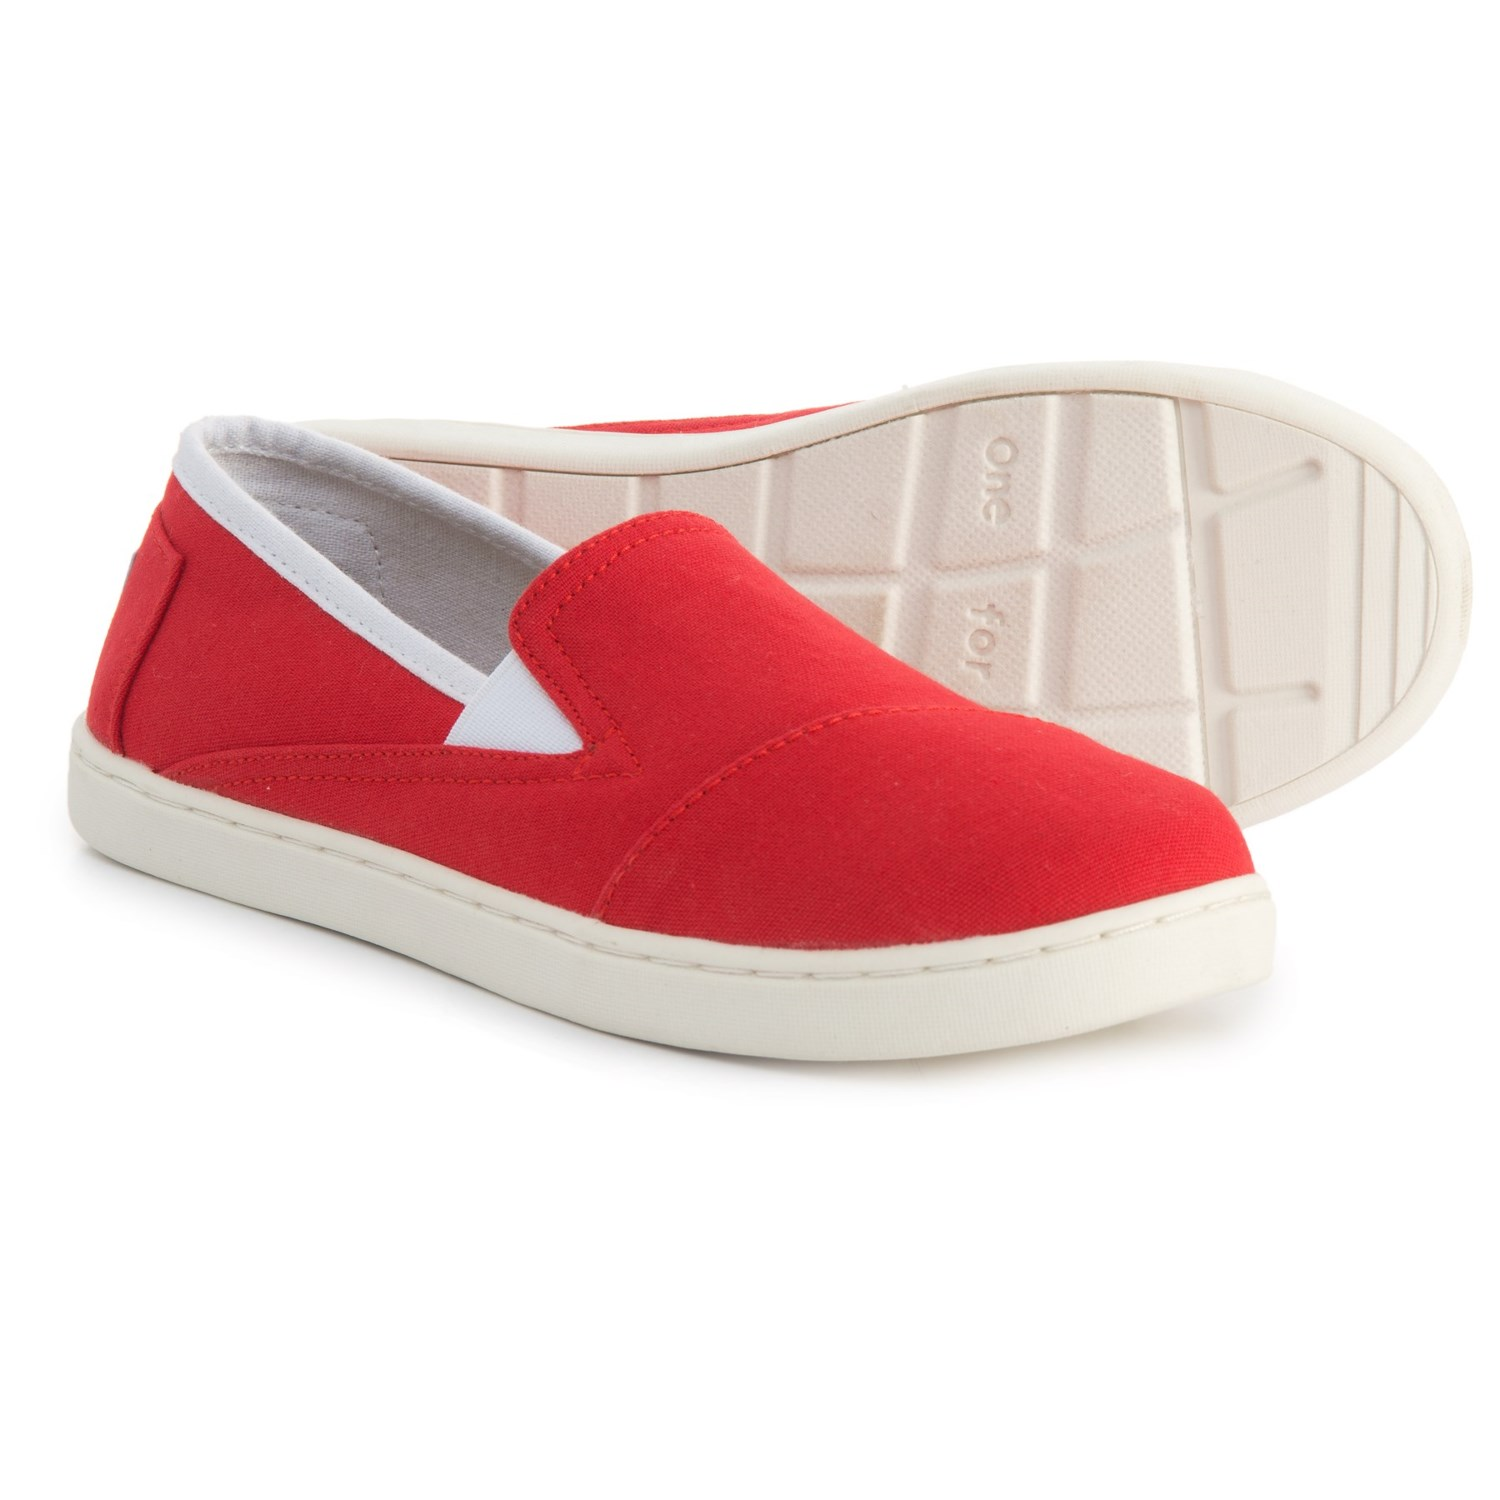 4626a18ef28 TOMS Avalon Canvas Shoes - Slip-Ons (For Girls) in Red